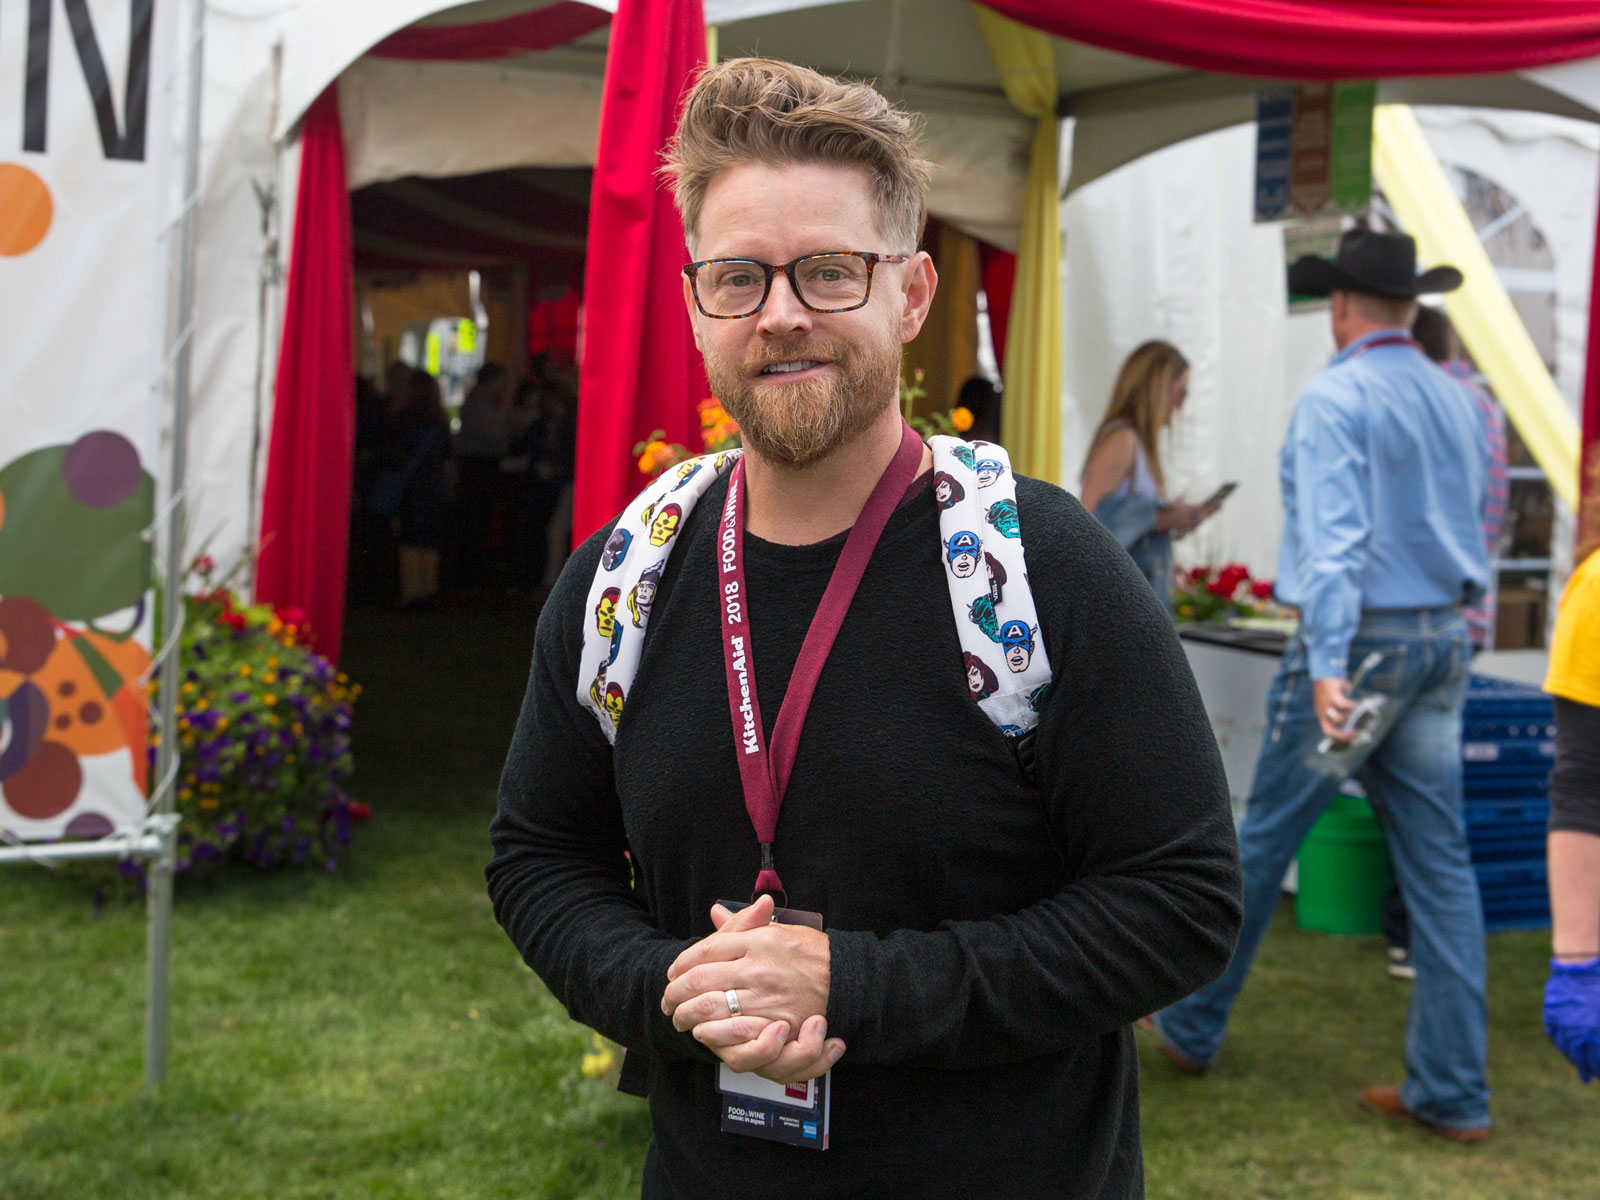 Richard Blais Tapped to Open Buzzy St. Louis Seafood Restaurant